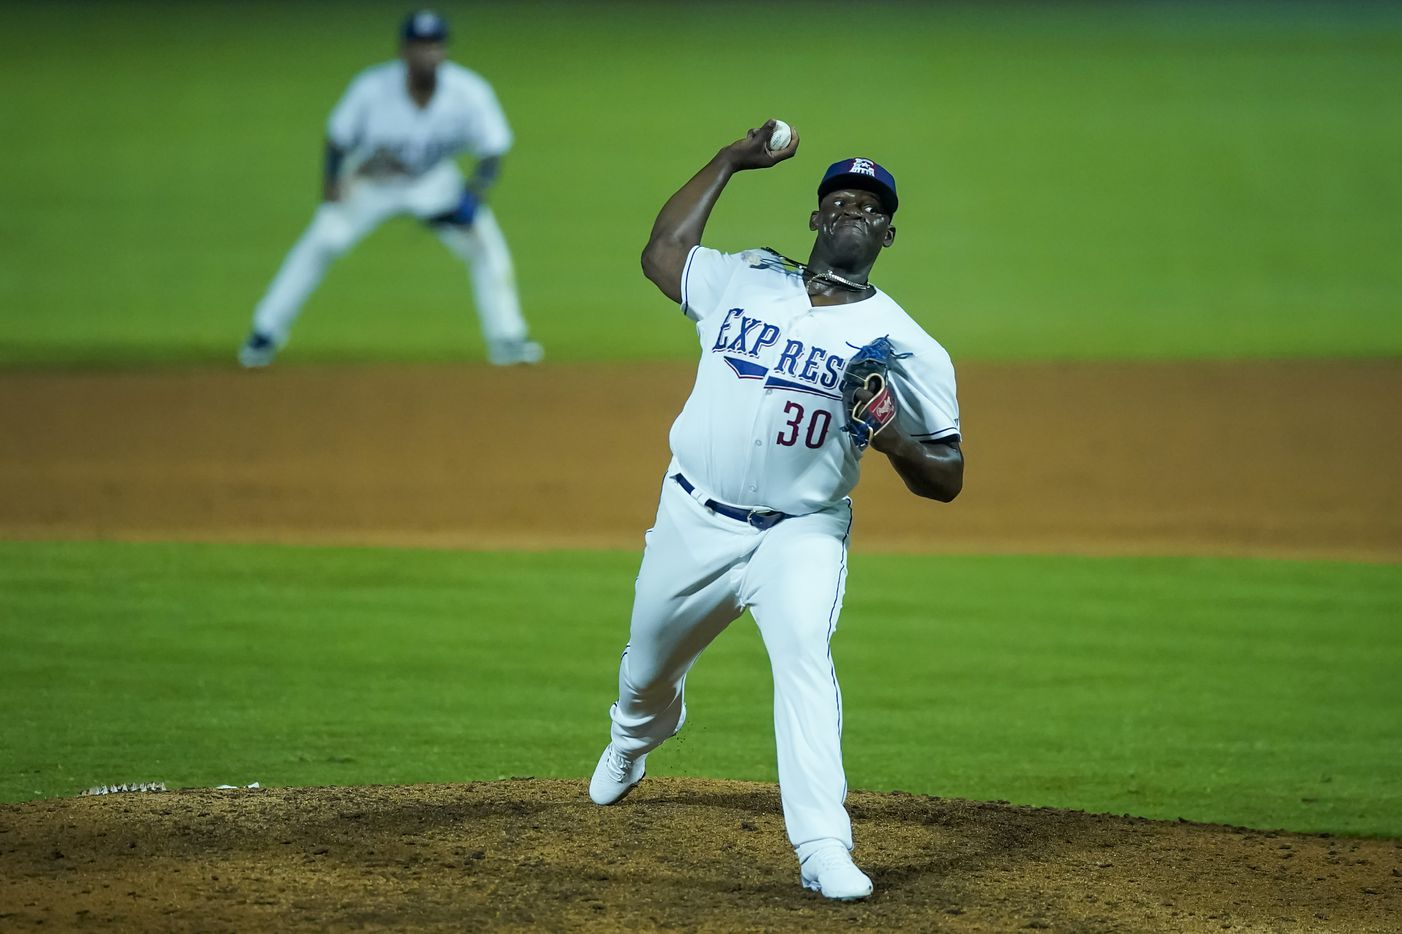 Round Rock Express pitcher Demarcus Evans delivers during the ninth inning against the Oklahoma City Dodgers at Dell Diamond on Thursday, May 6, 2021, in Round Rock, Texas.